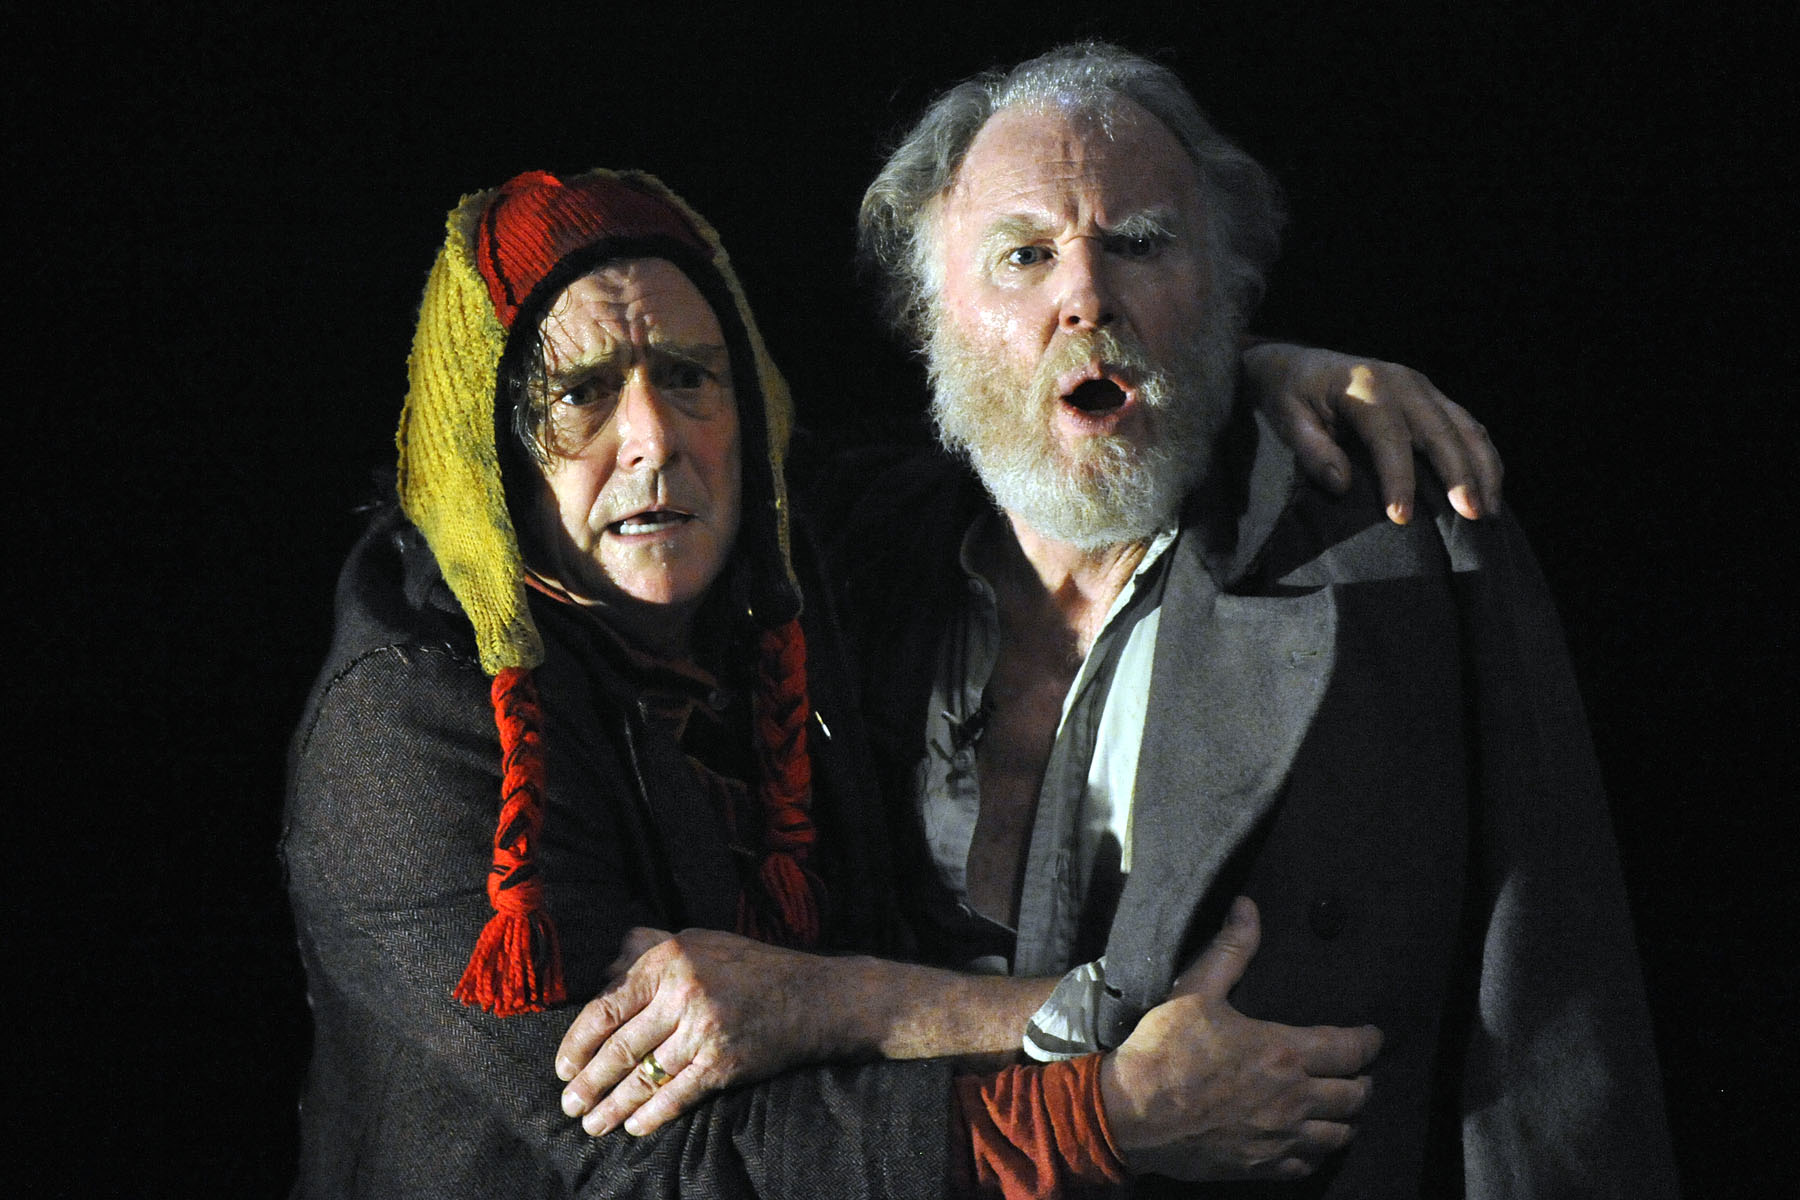 Tim-Pigott-Smith-King-Lear-Richard-O'Callaghan-Fool.jpg